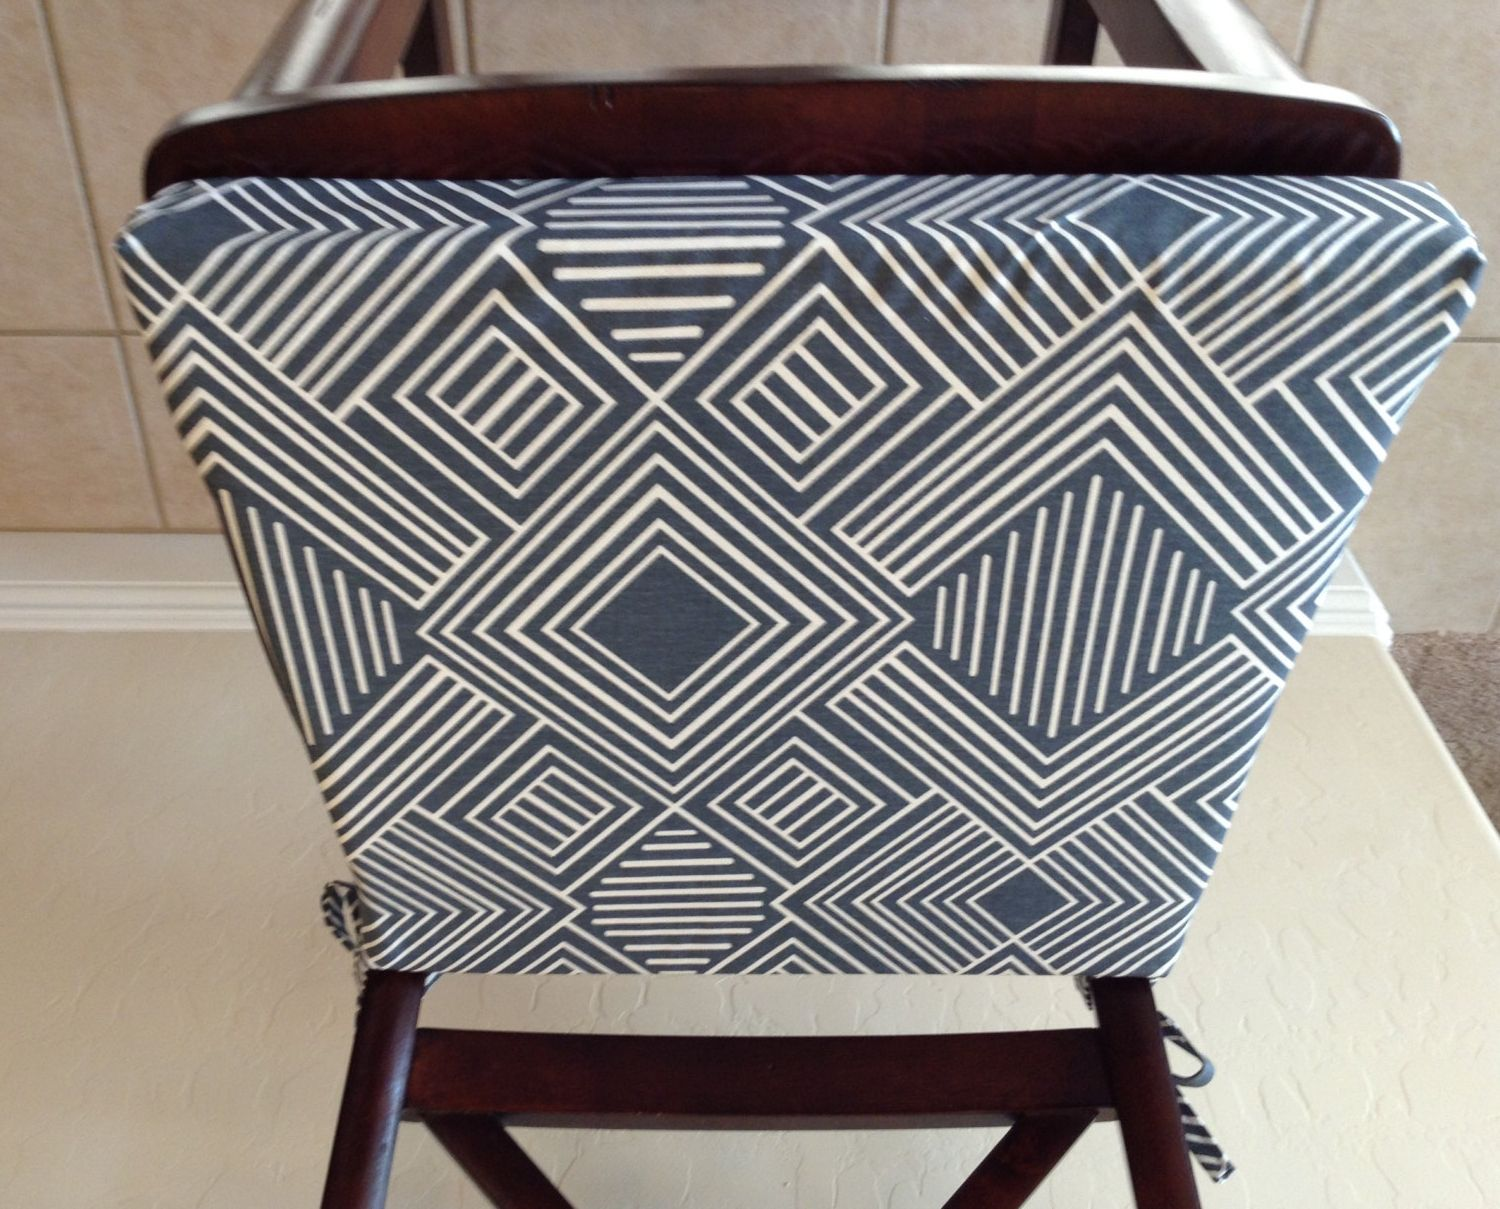 Beautiful Geometric Print Seat Cushion Cover, Kitchen Chair Pad, Gunmetal Blue/gray  On Cream